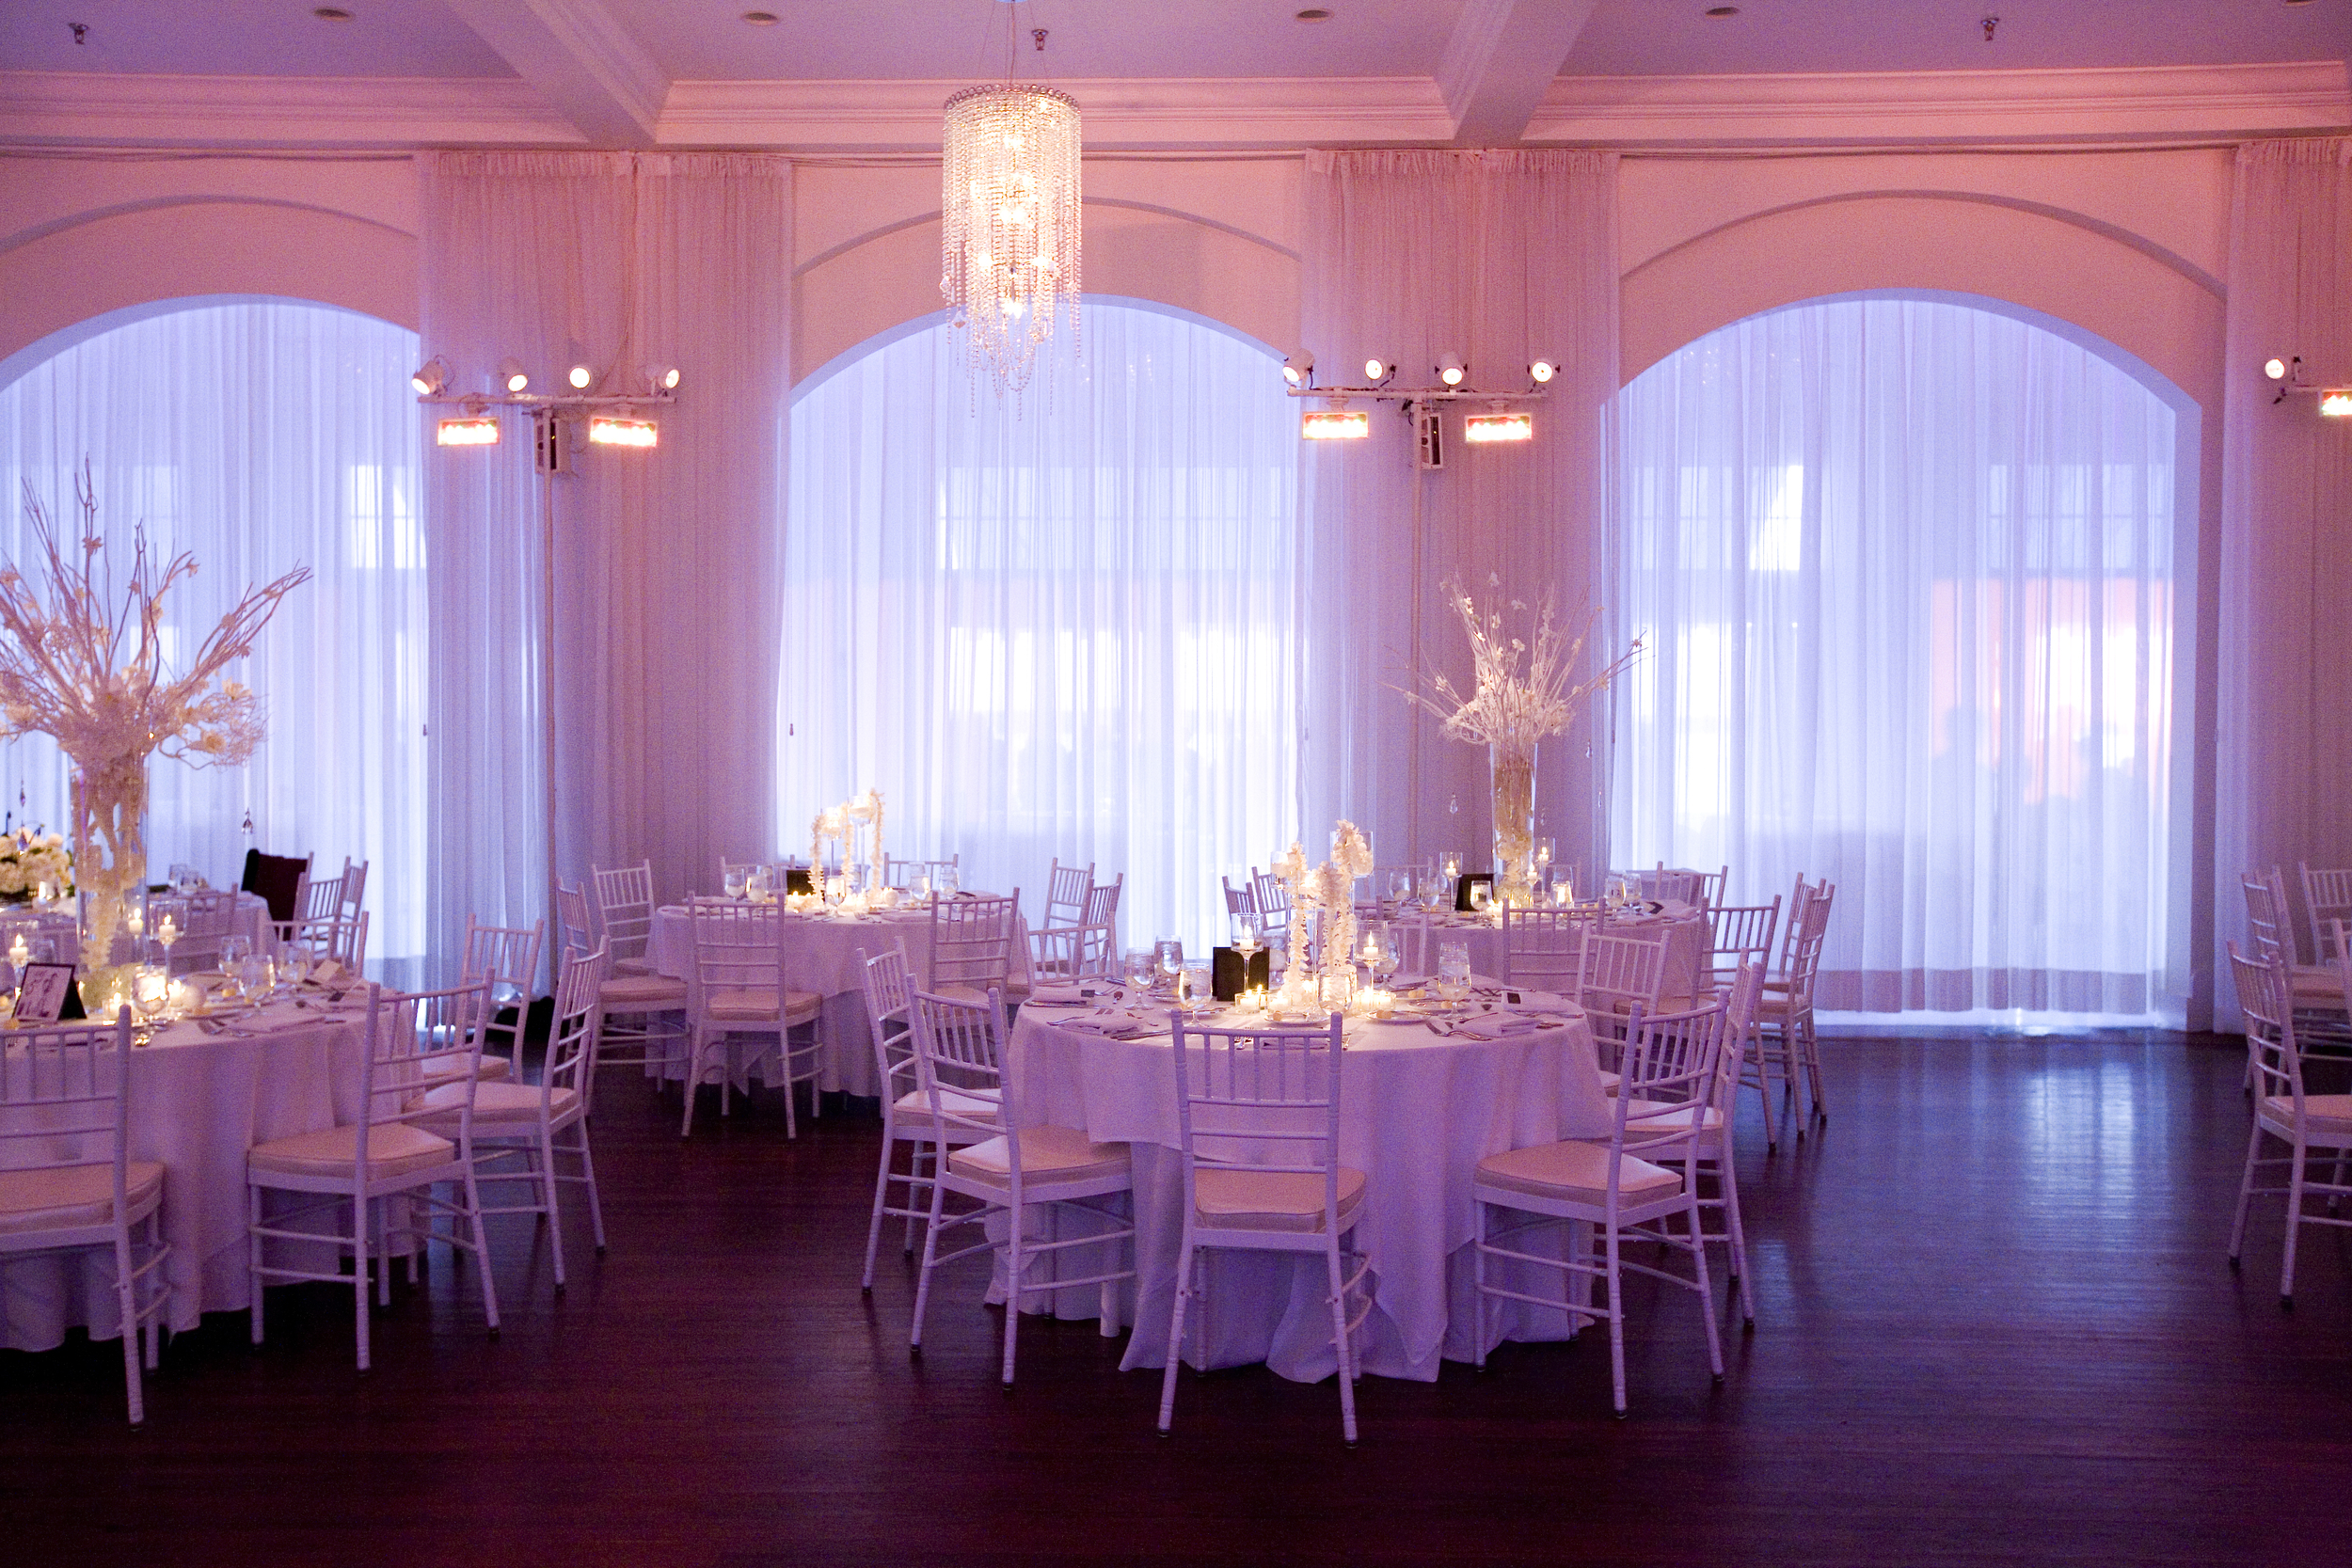 Lavender lighting floods the reception area.